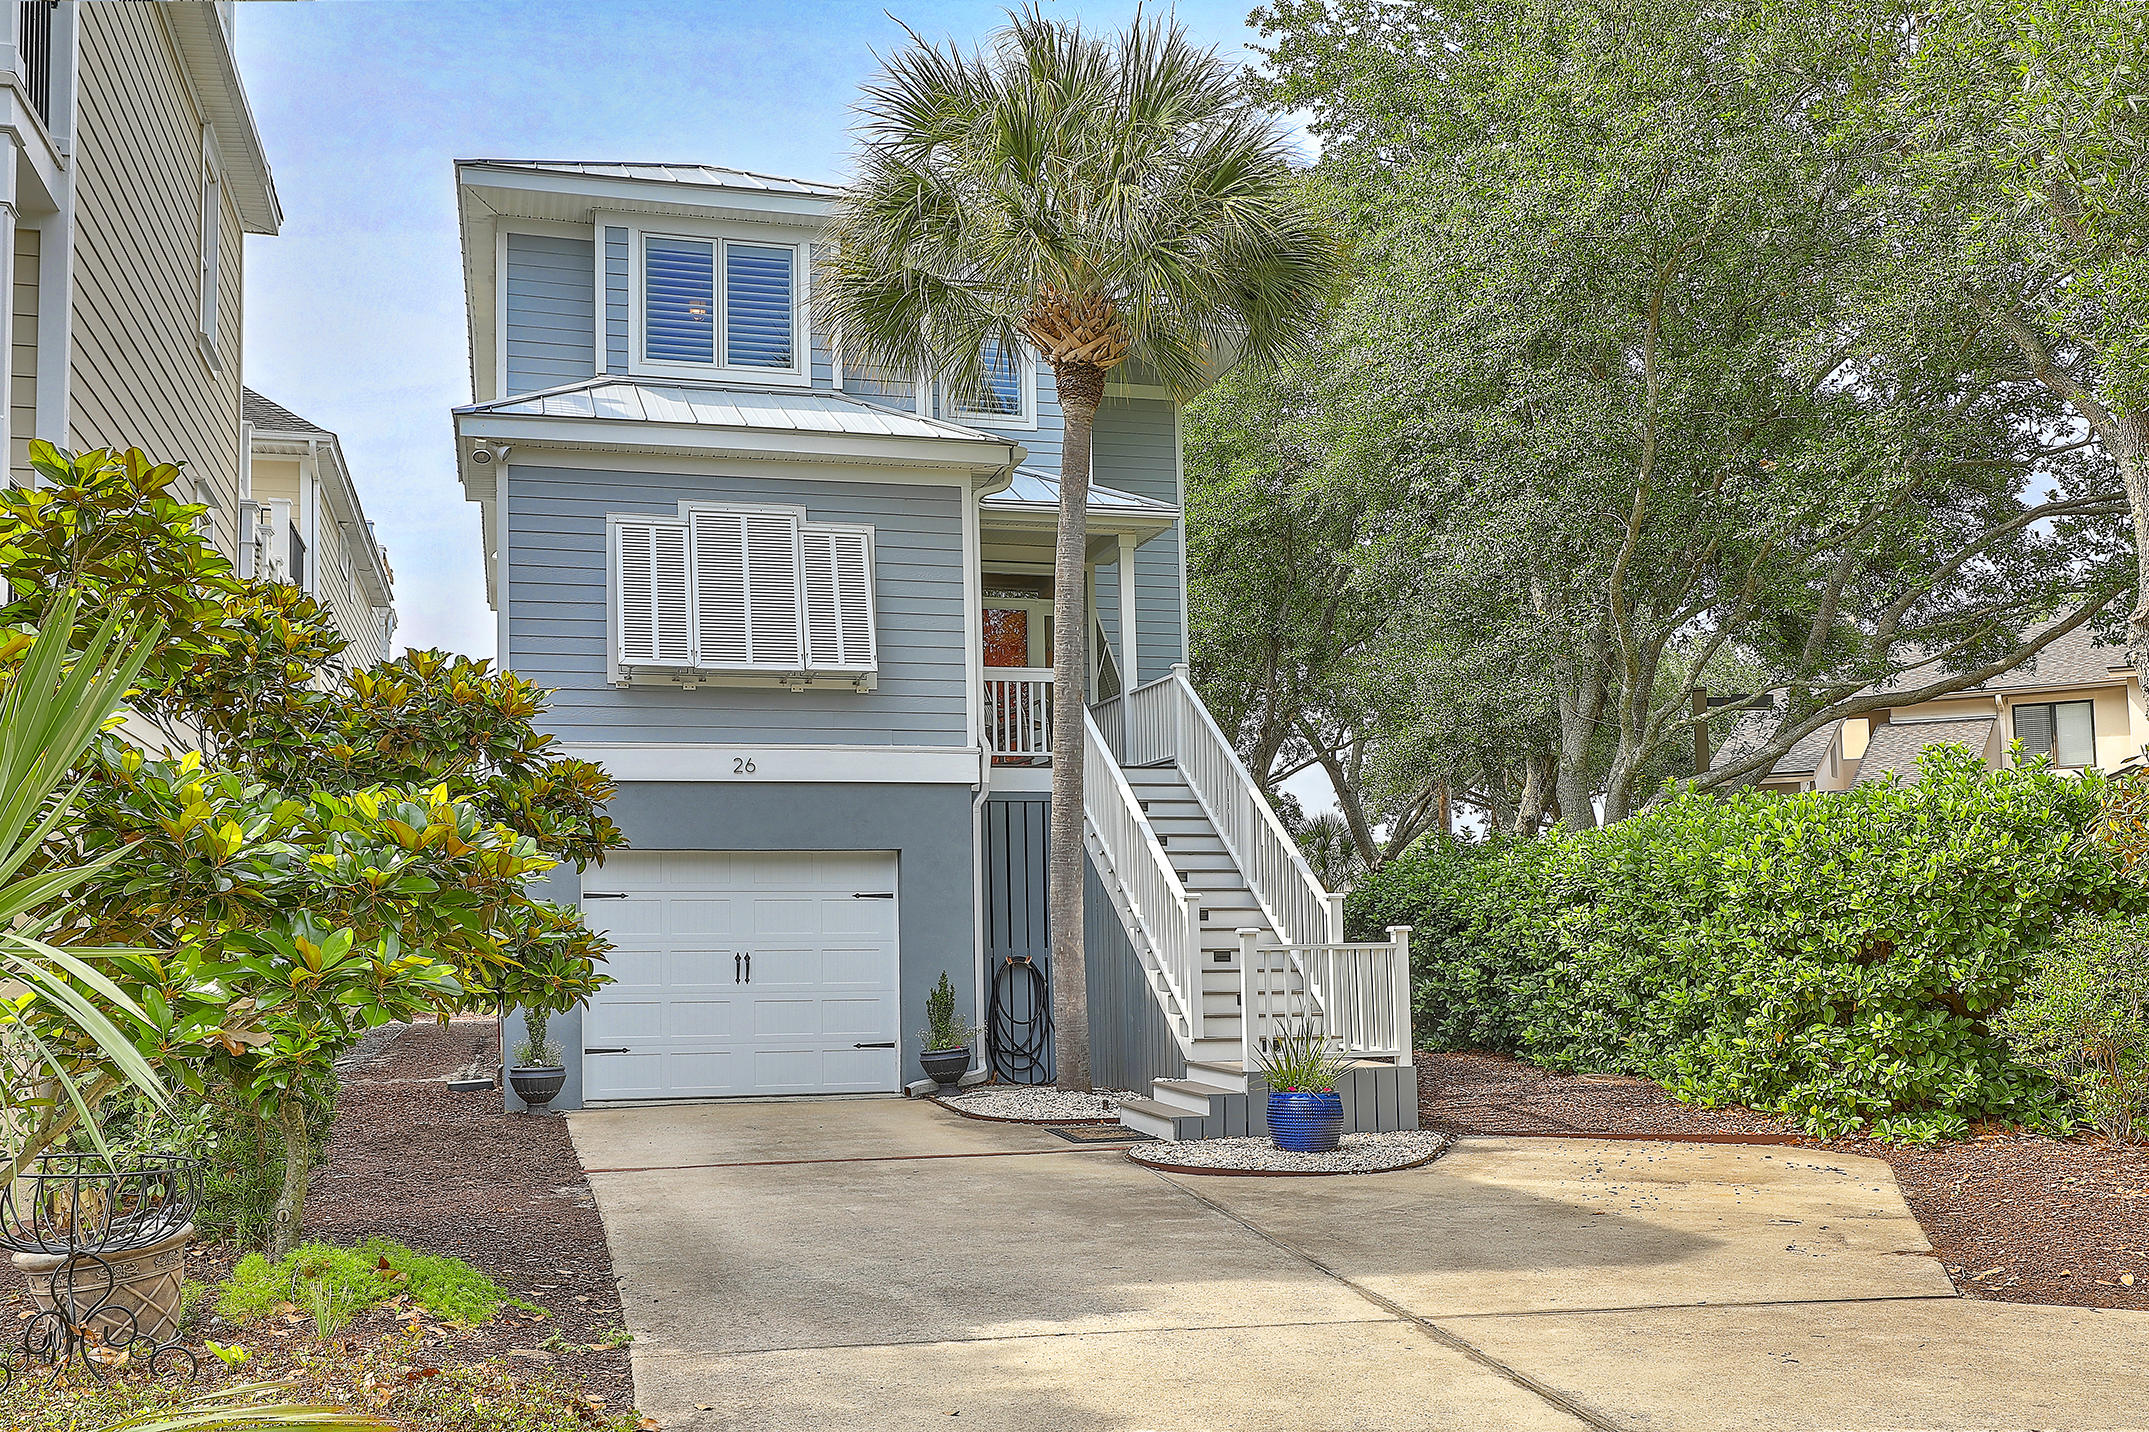 Wild Dunes Homes For Sale - 26 Yacht Harbor, Isle of Palms, SC - 35